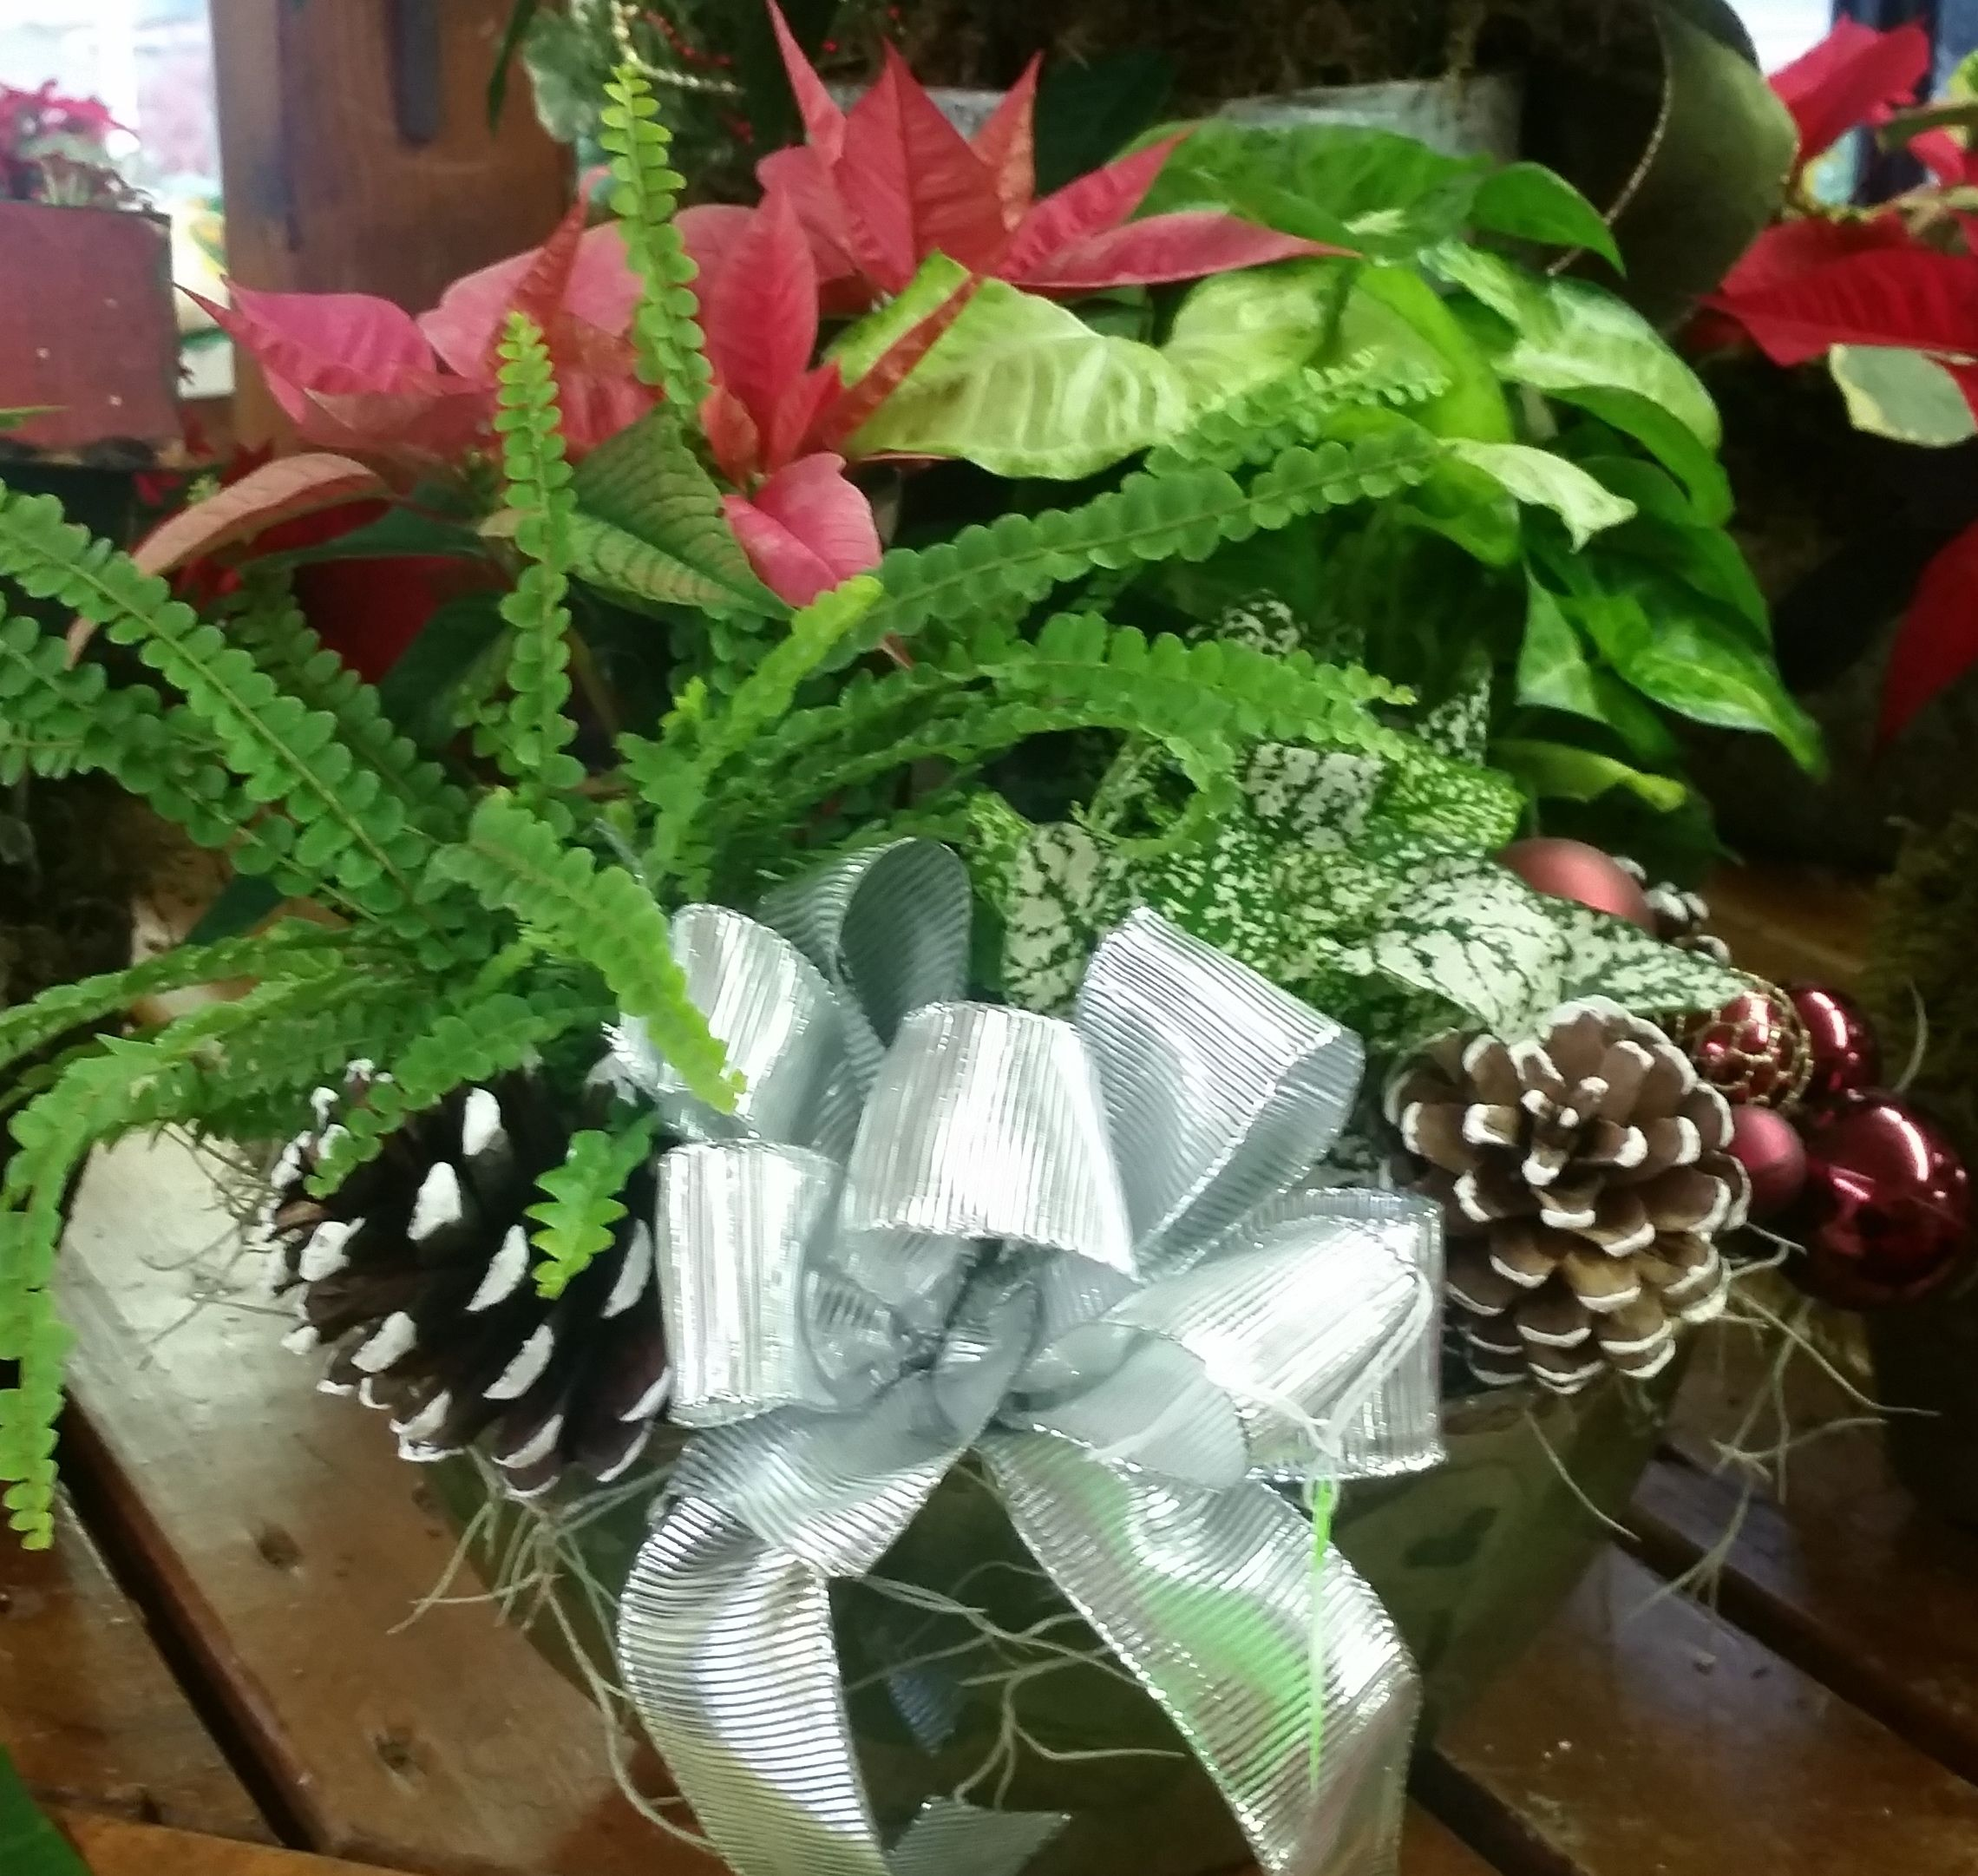 Holiday planter with a fern poinsettia and polka dot plant adorned